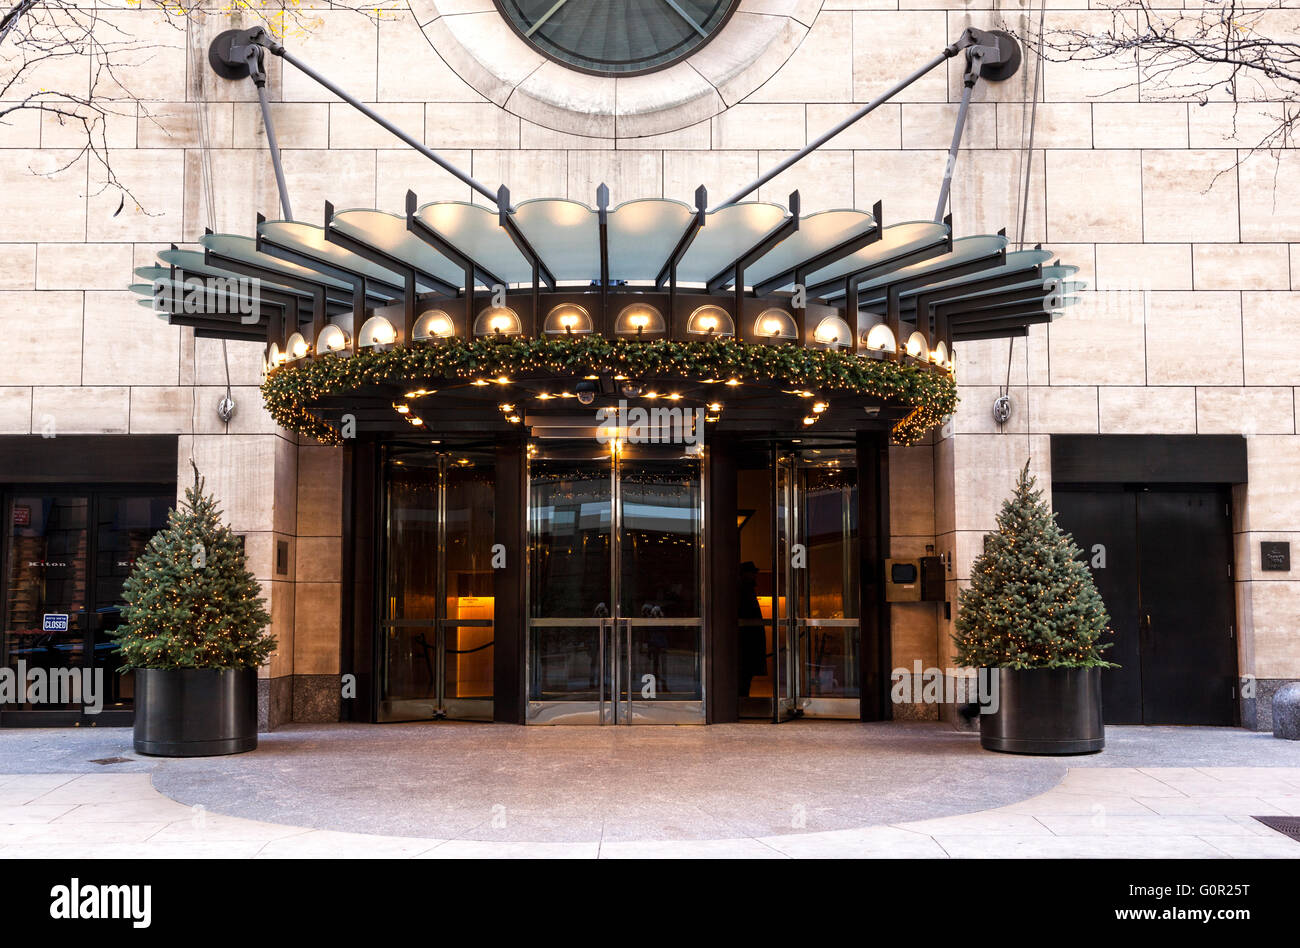 Four Seasons Hotel, New York, USA - Stock Image